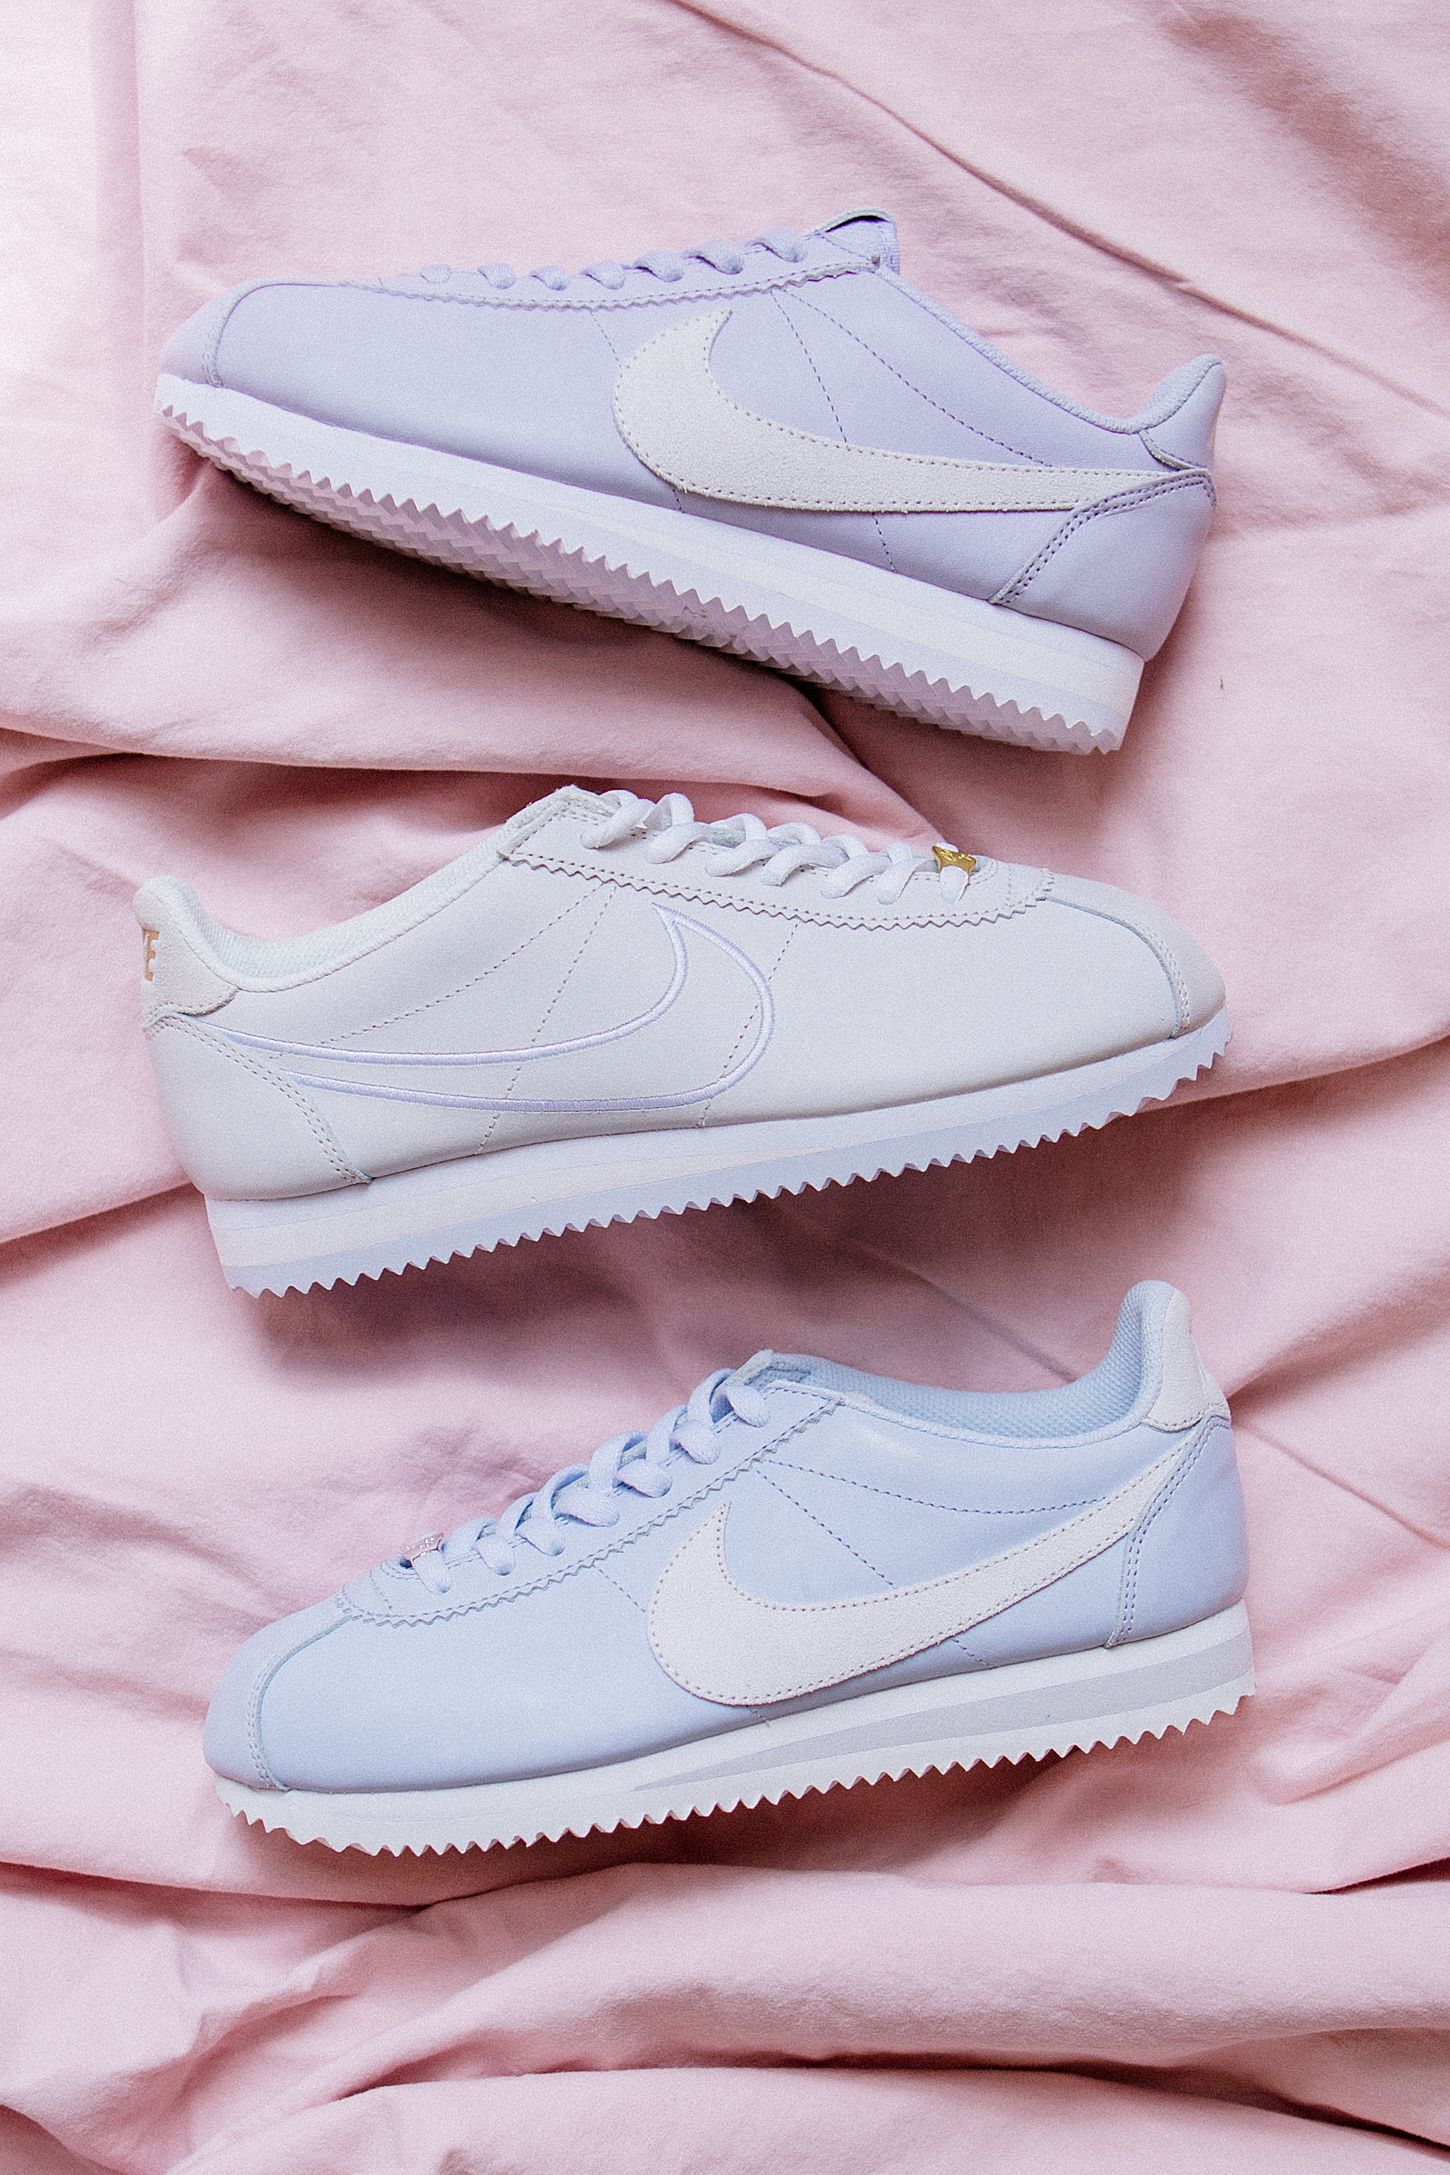 the best attitude 27d3e c54ba Nike Classic Cortez Pastel Sneaker. Tap image to zoom. Hover to zoom.  Double Tap to Zoom